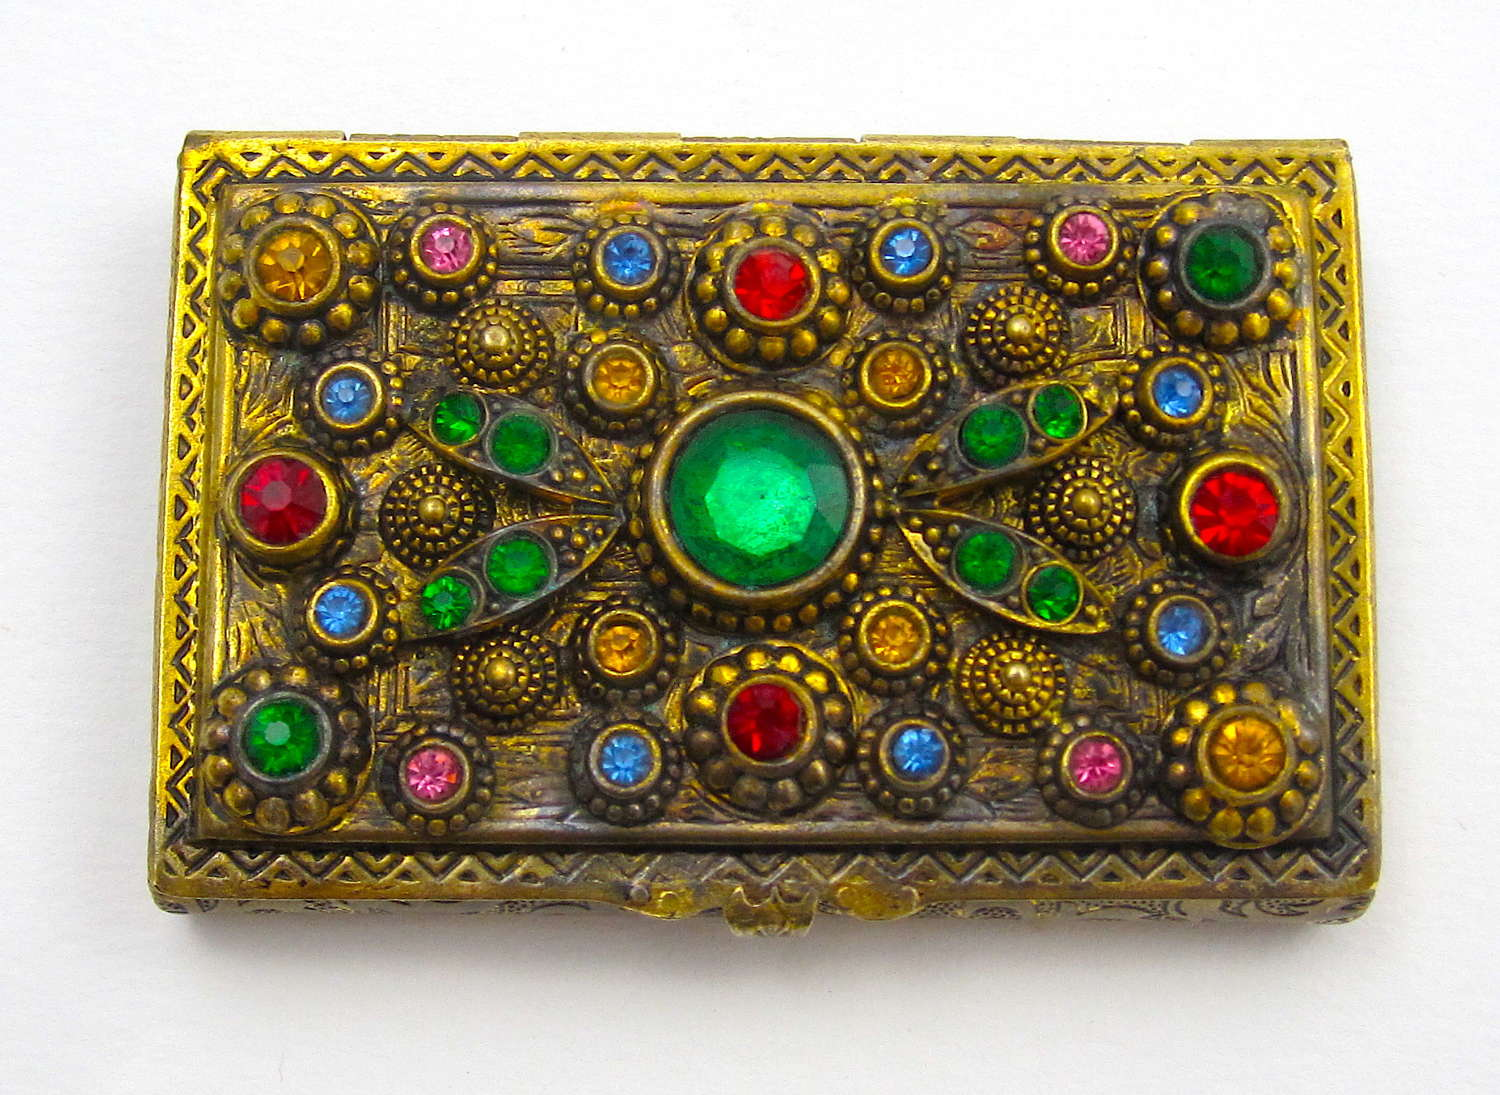 Antique Dore Bronze Box Encrusted with Jewels